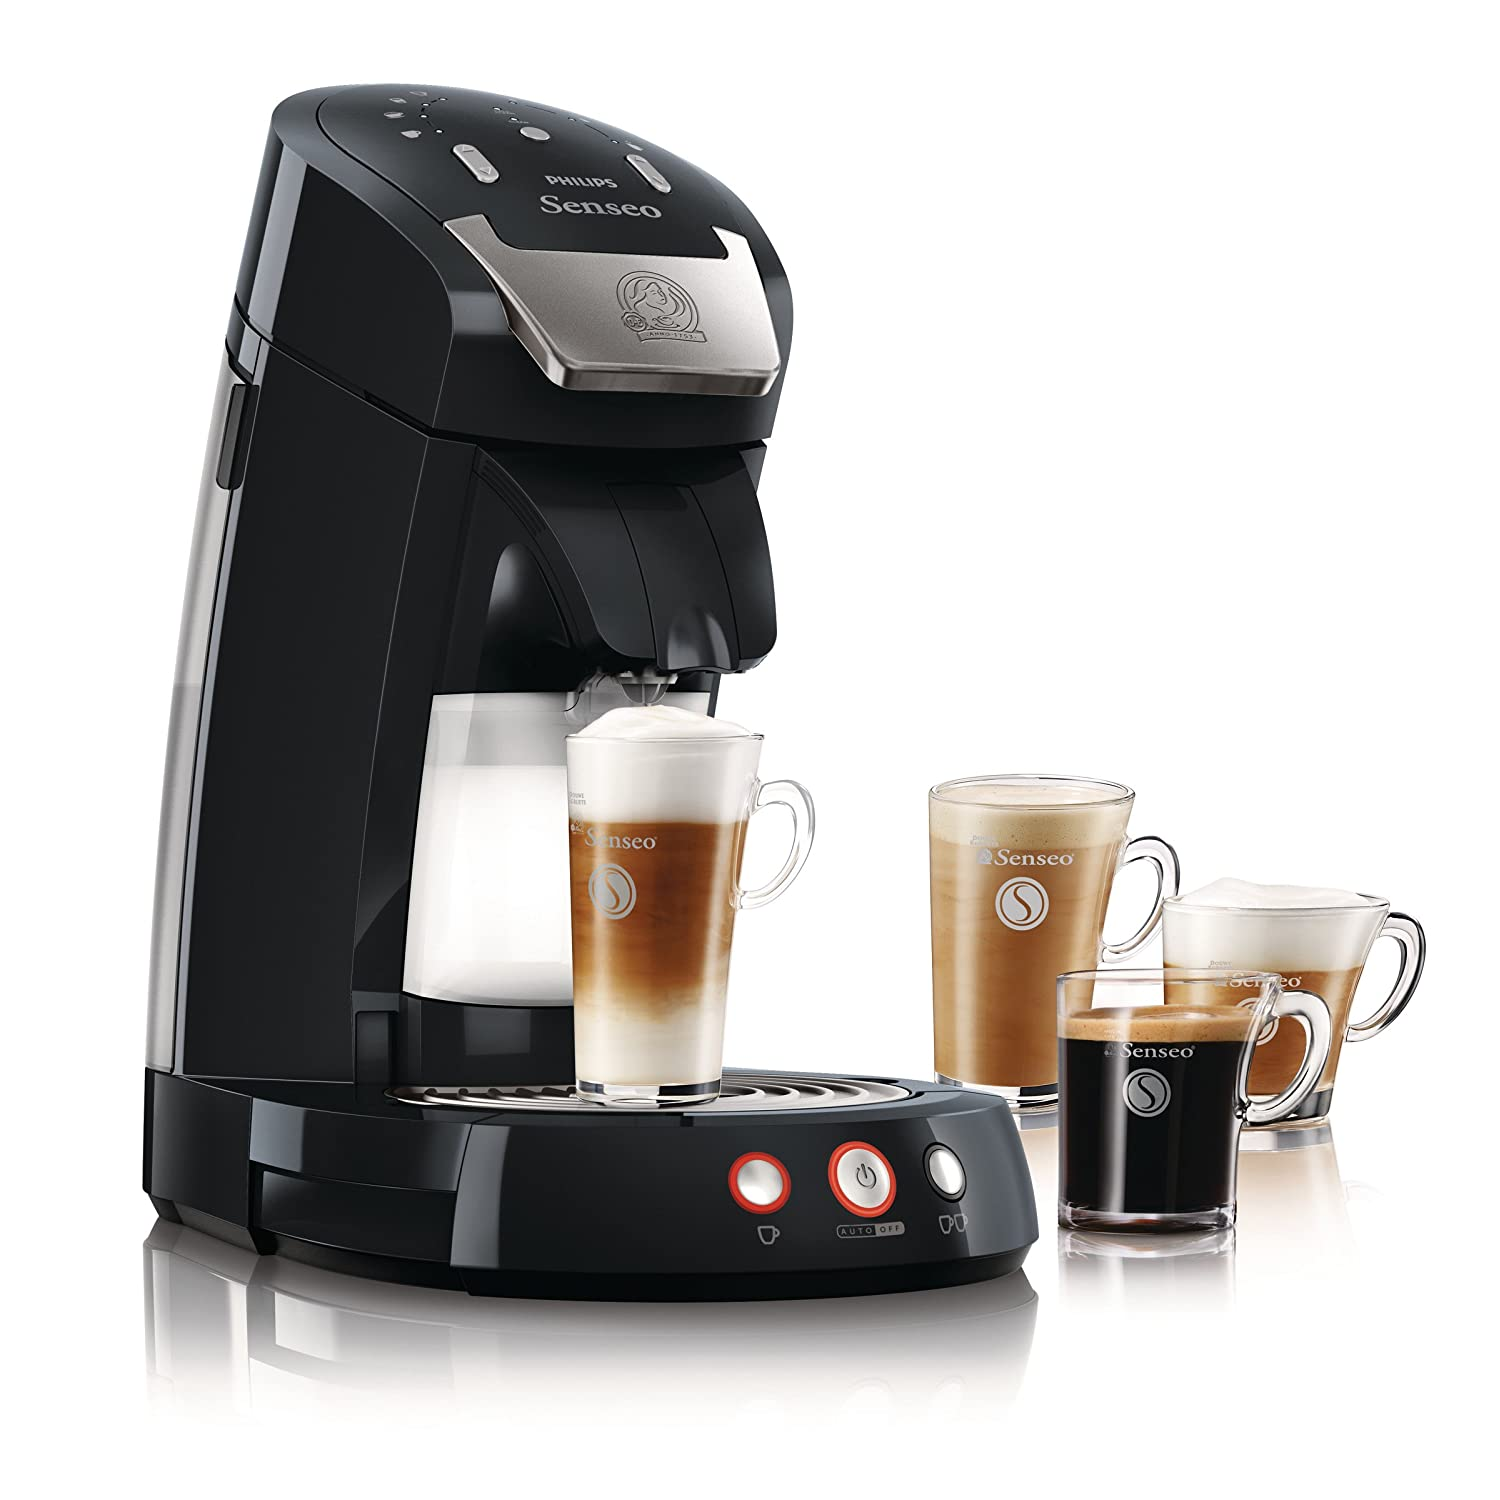 philips senseo viva caf hd7825 60 coffee machine with pod. Black Bedroom Furniture Sets. Home Design Ideas